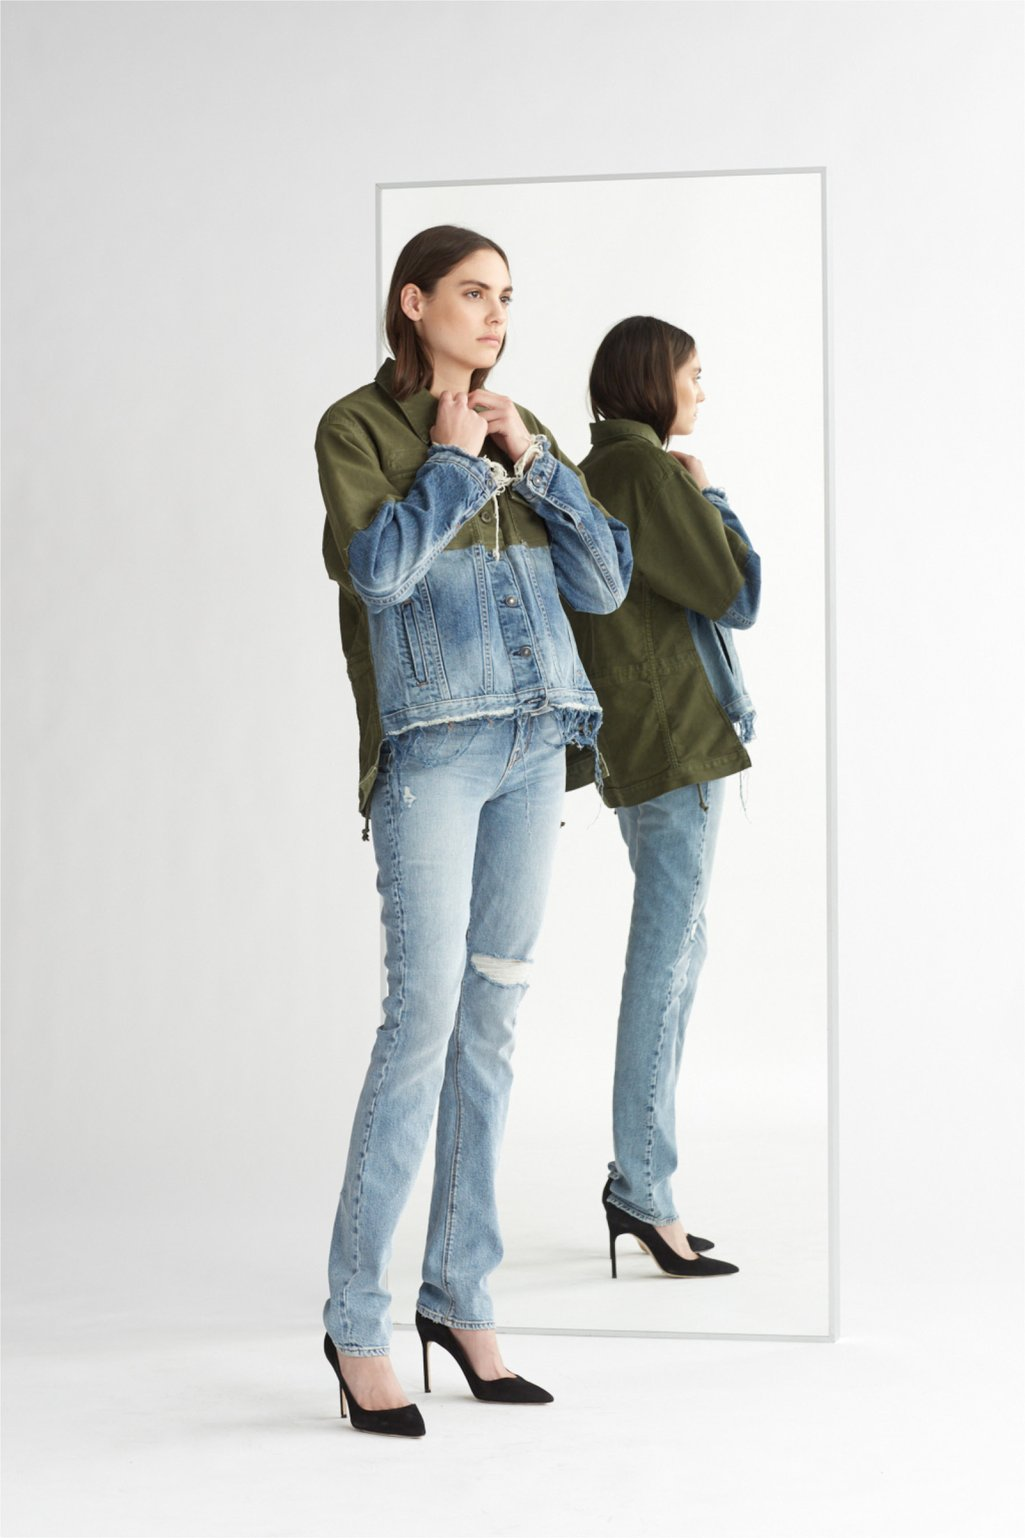 Hudson Denim - Hudson is rebellious in its attitude, effortless in its style, youthful in its mindset and modern in its execution. We focus on their statement denim and jackets.